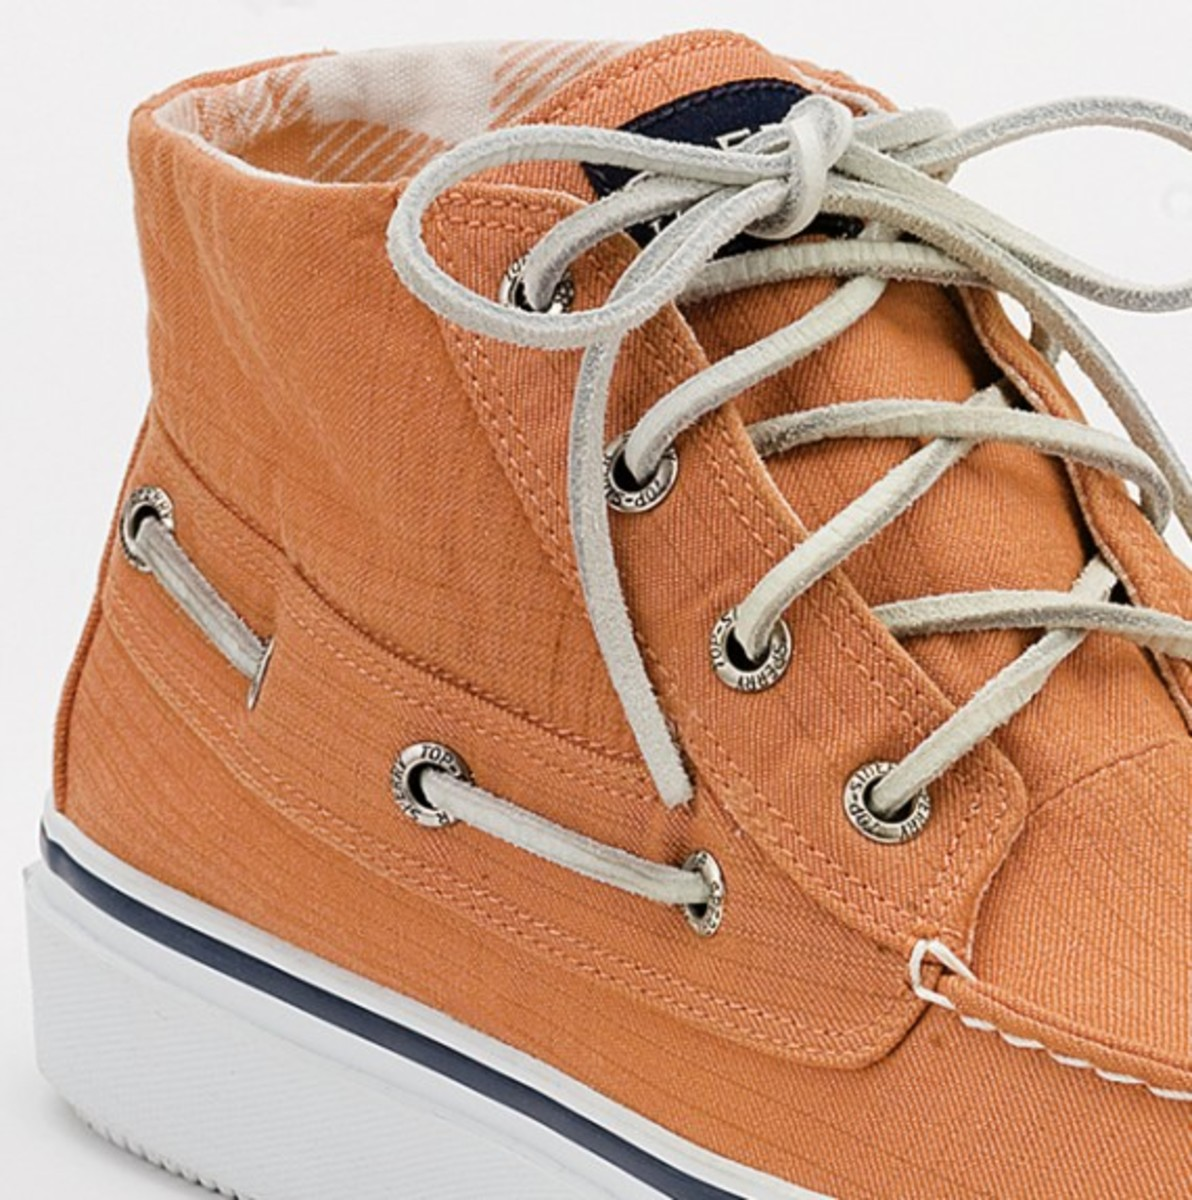 sperry_topsider_ss2010_13